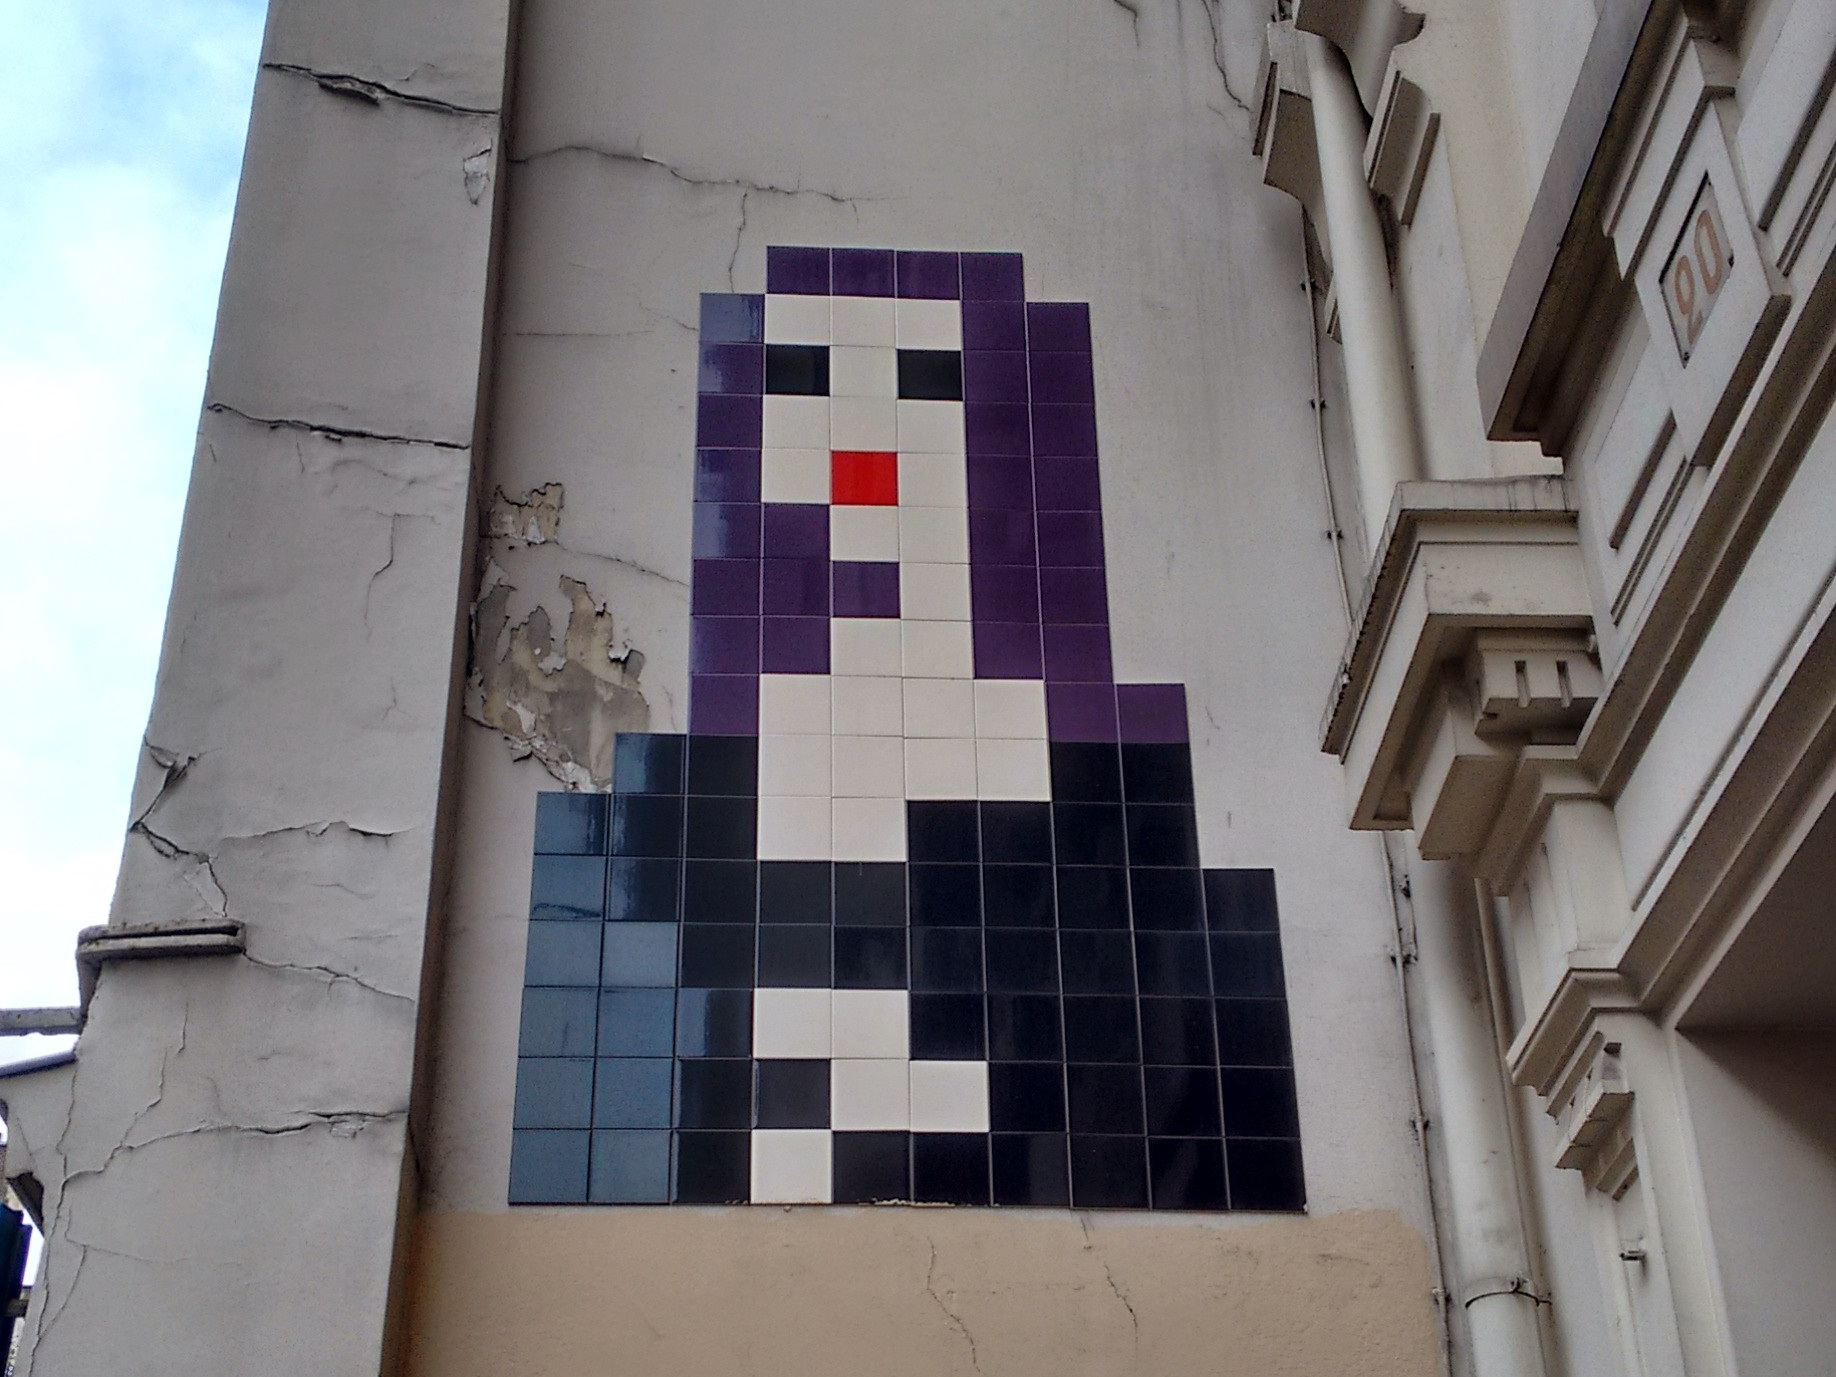 The 8-bit Mona Lisa